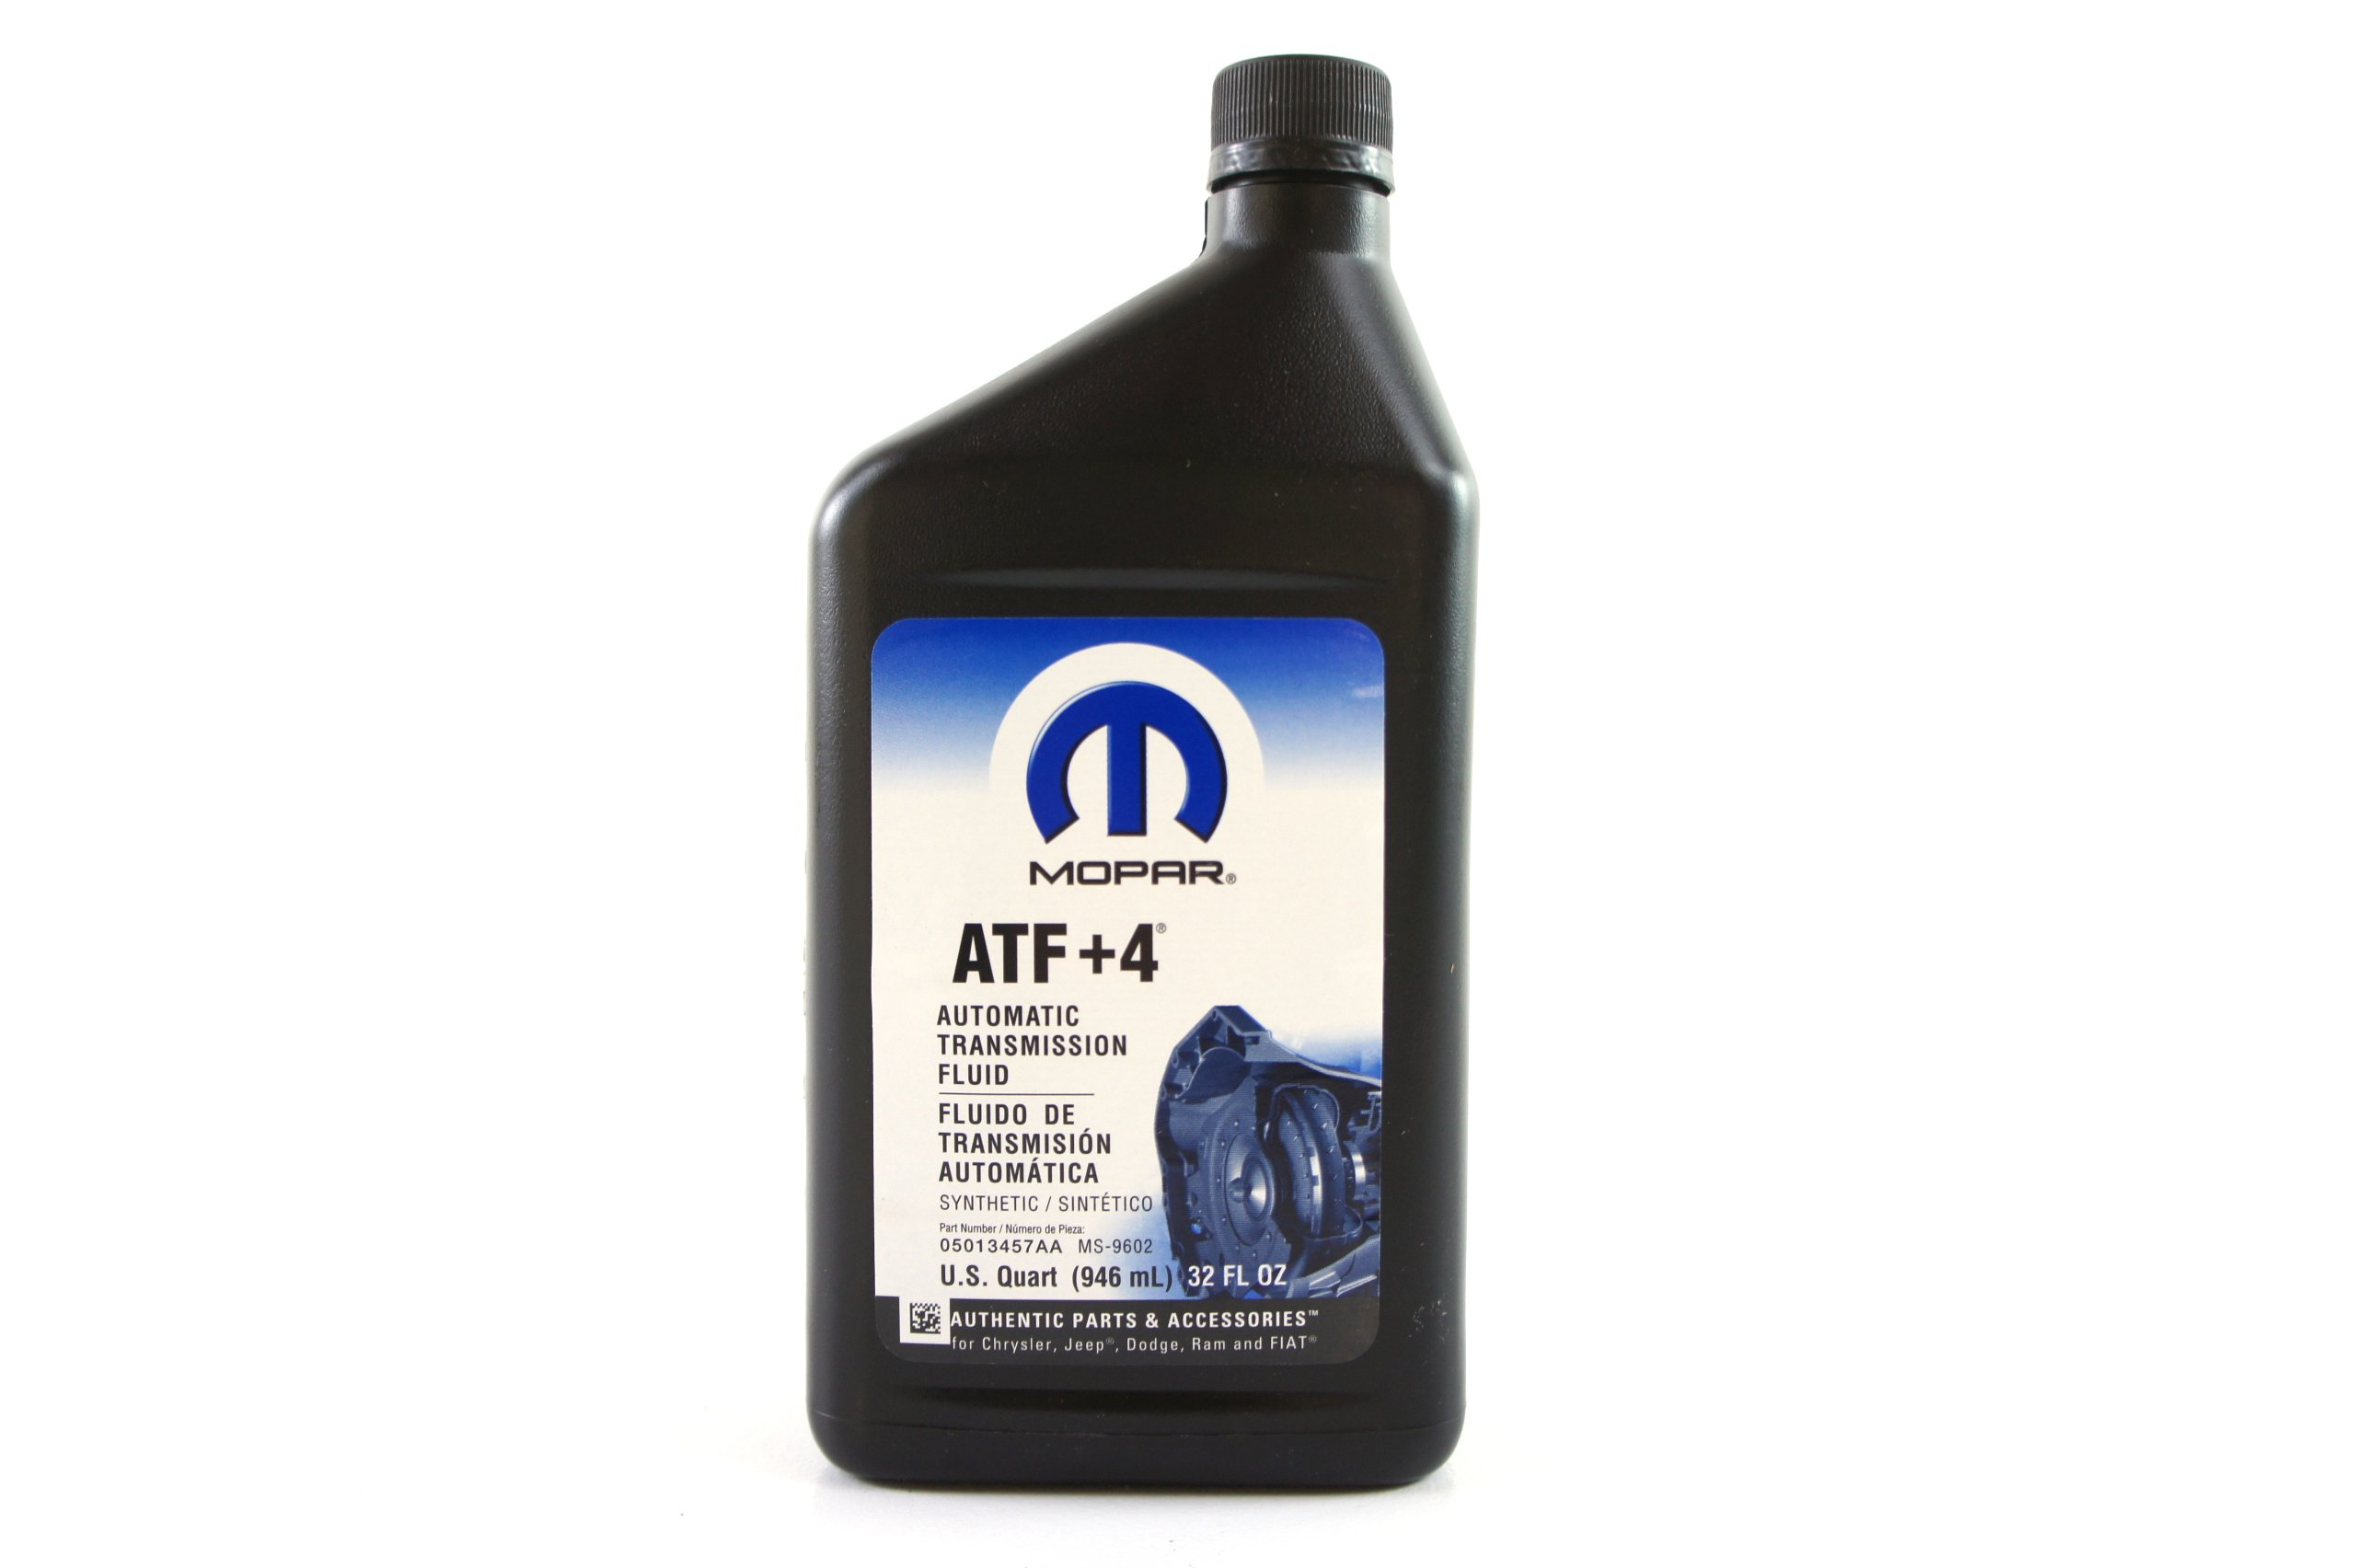 Chrysler (68218057AA) Genuine Mopar Fluid ATF+4 Automatic Transmission Fluid - 1 Quart